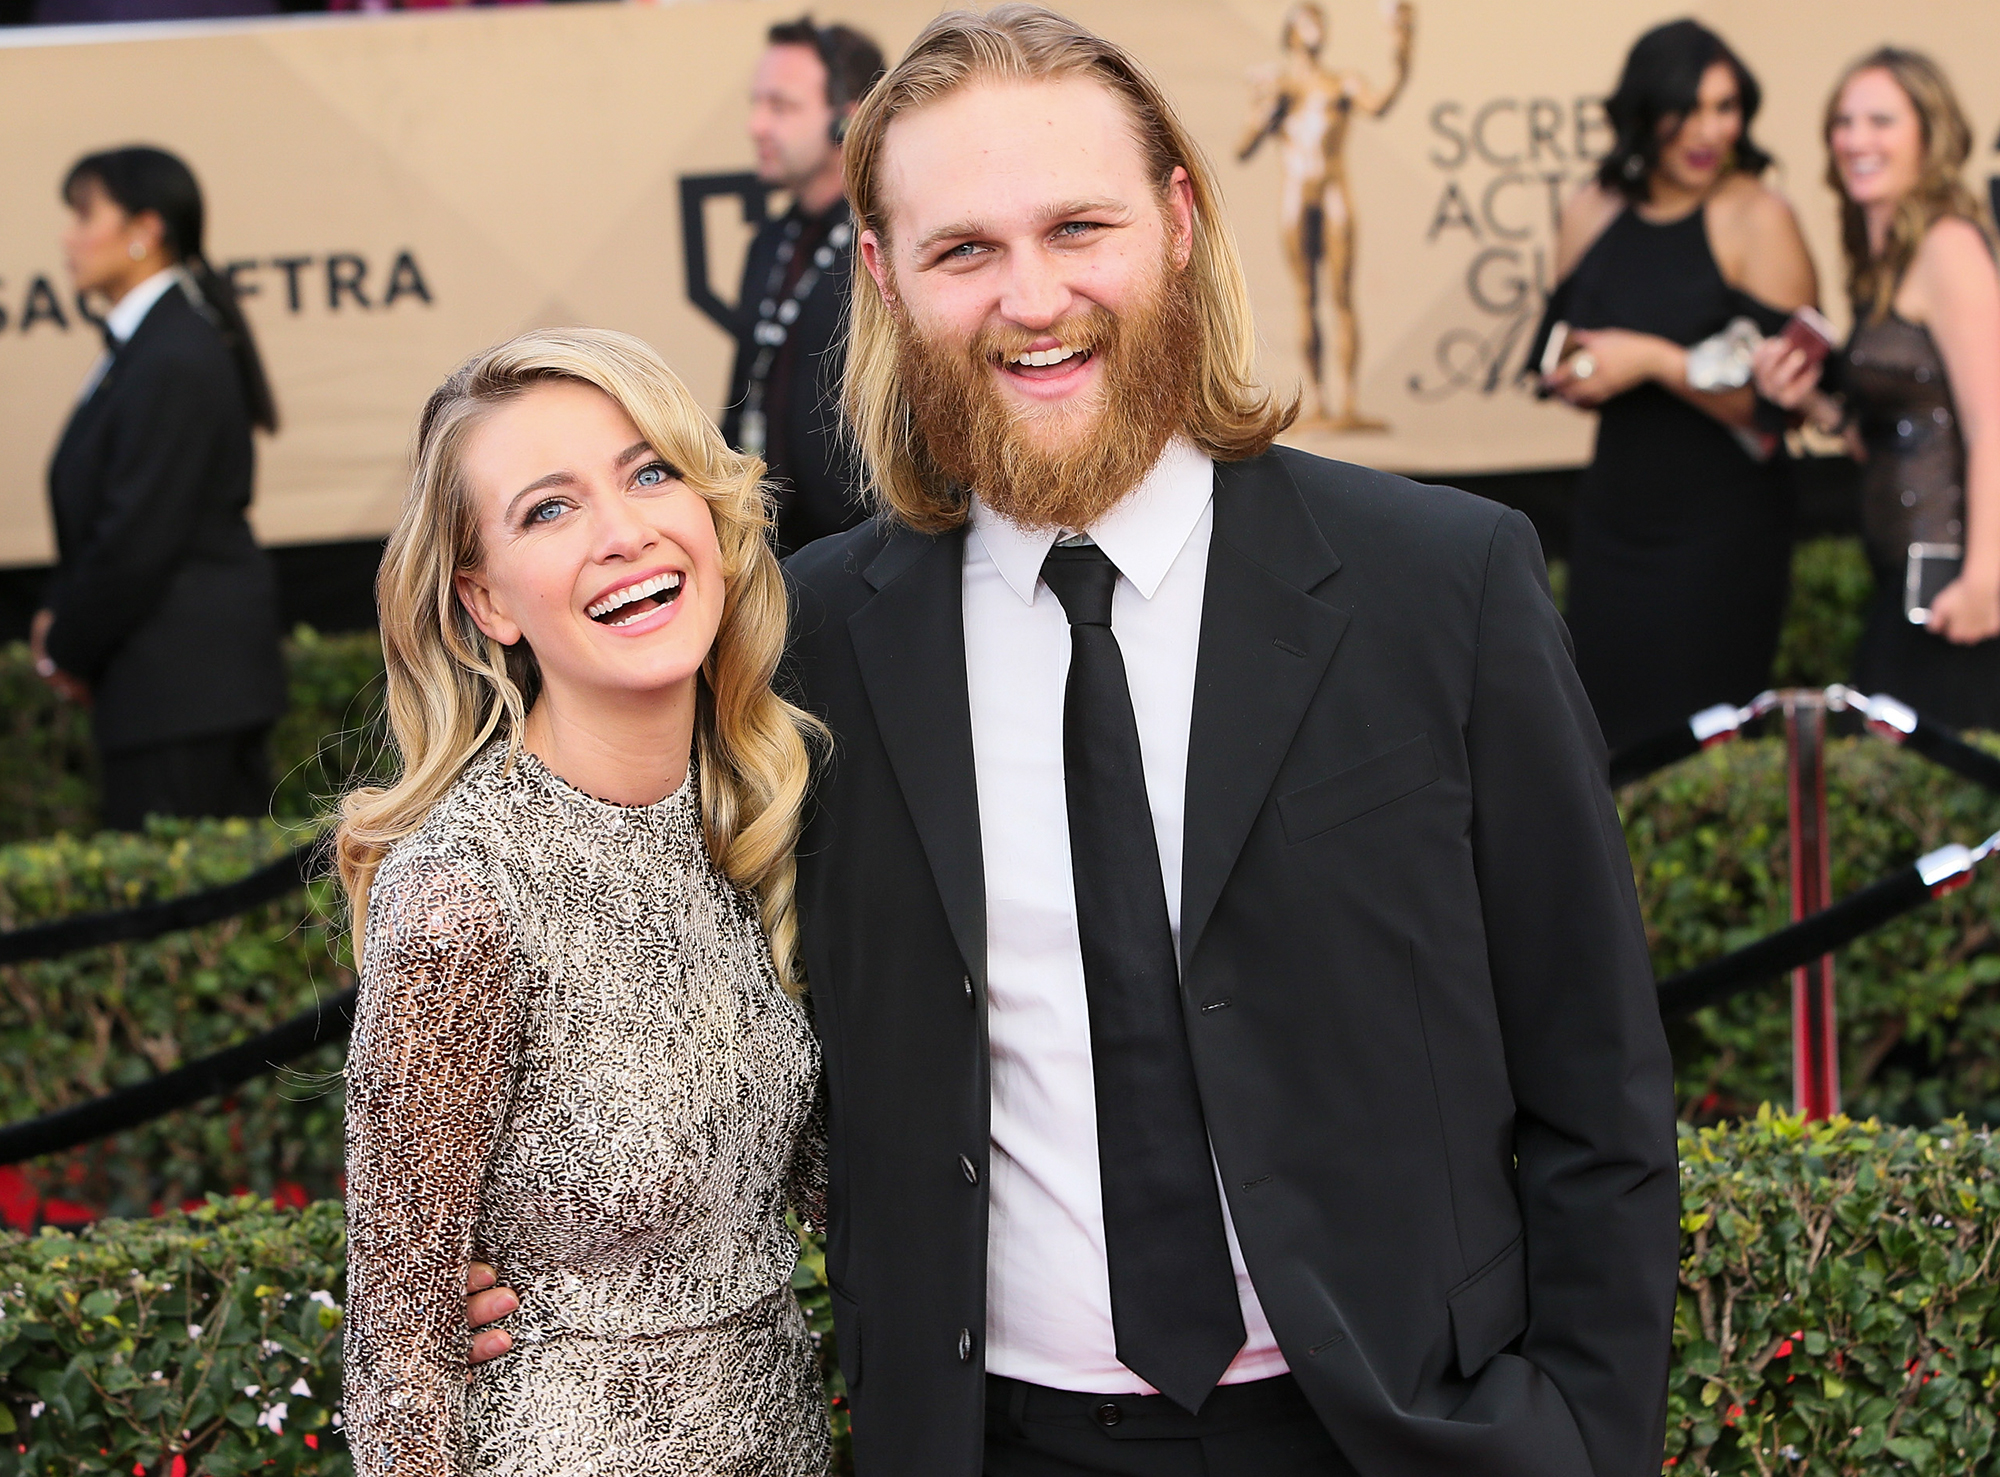 Wyatt Russell and Meredith Hagner